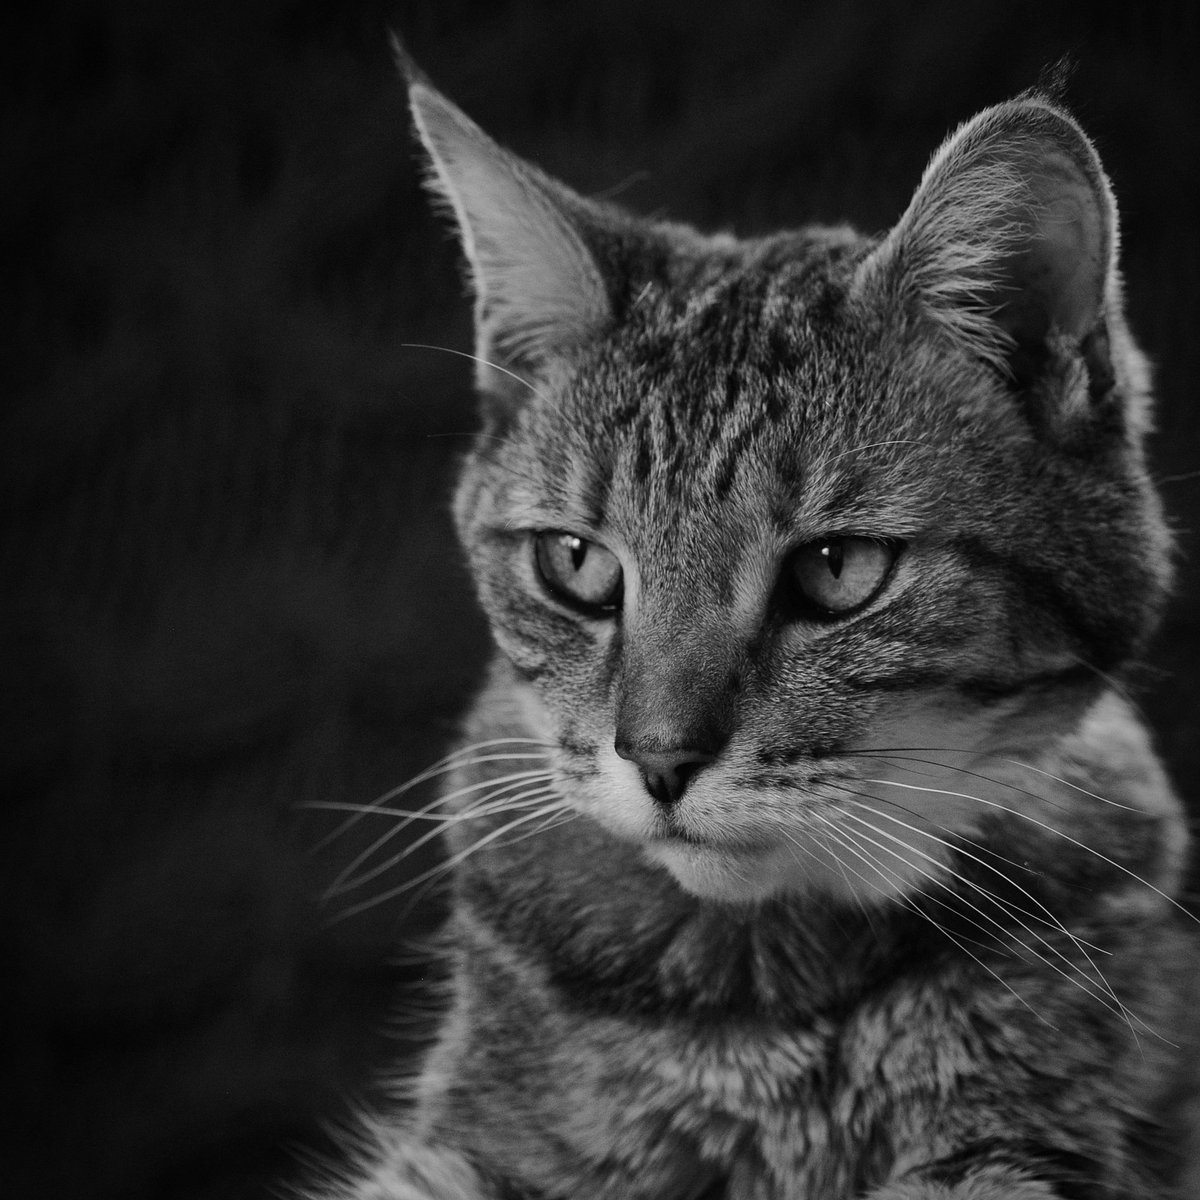 Trying out some black and white photography today with my favourite model,  Lily.  #photography #bnwphotography #amateurphotography #cats #petphotography #petportrait